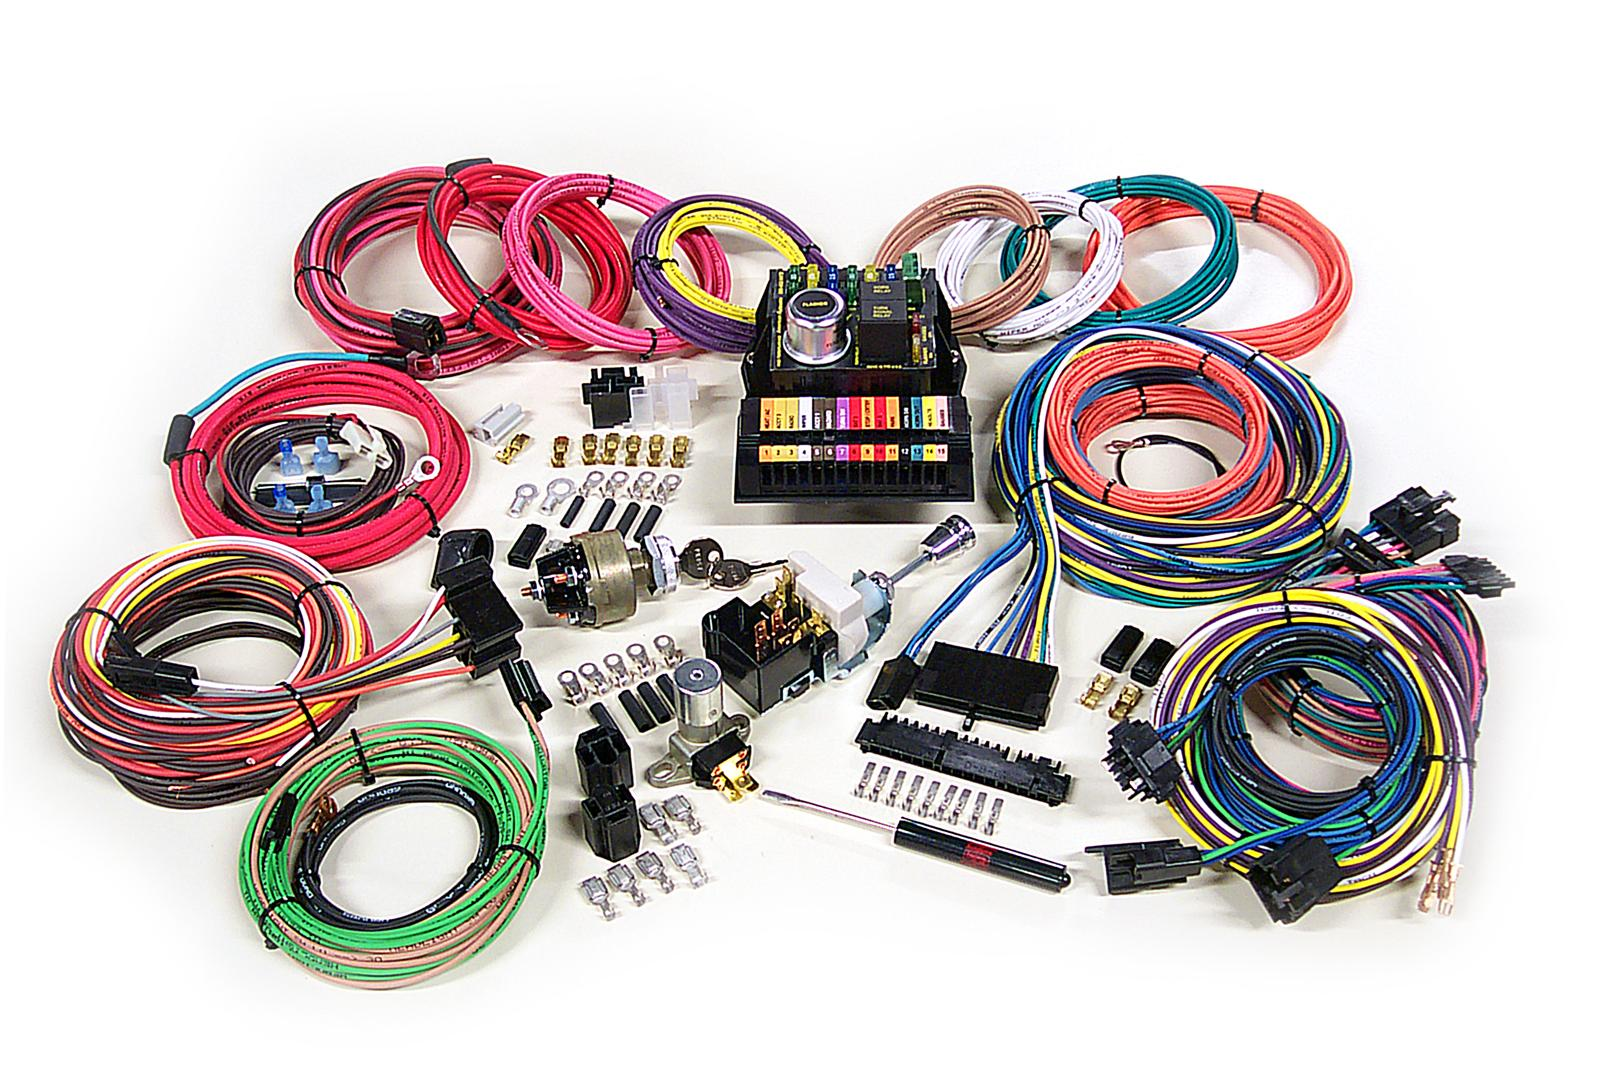 hight resolution of american autowire highway 15 wiring harness kits 500703 free automotive wiring harness american autowire highway 15